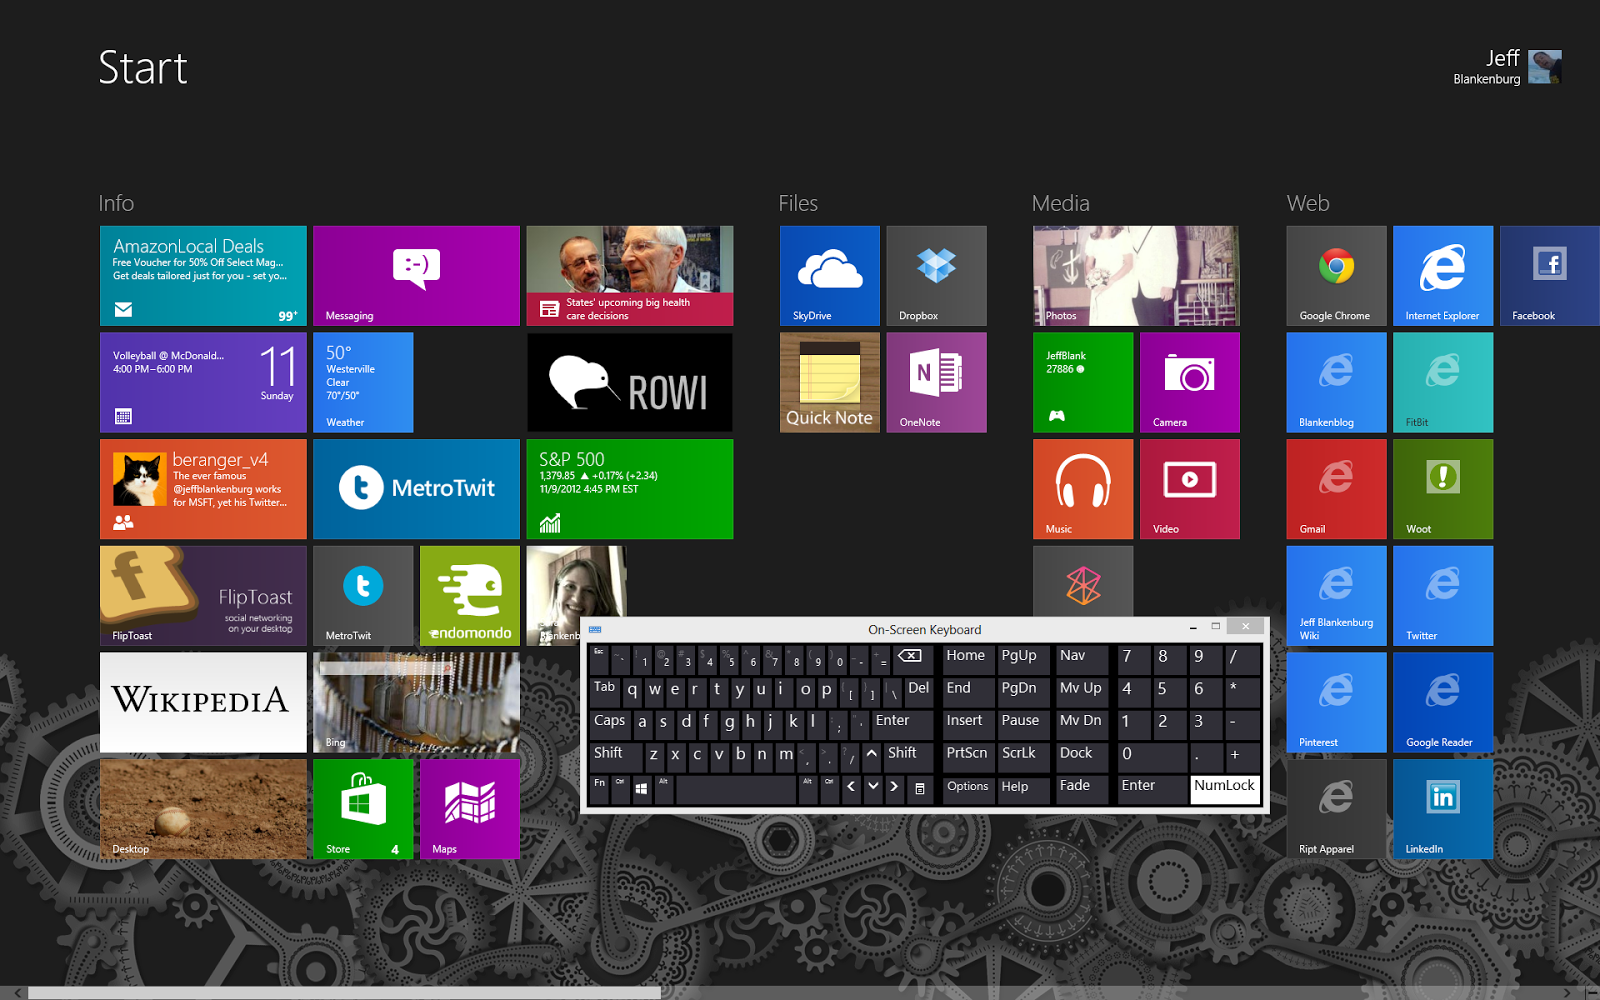 Turn off Windows 8.x With Keyboard